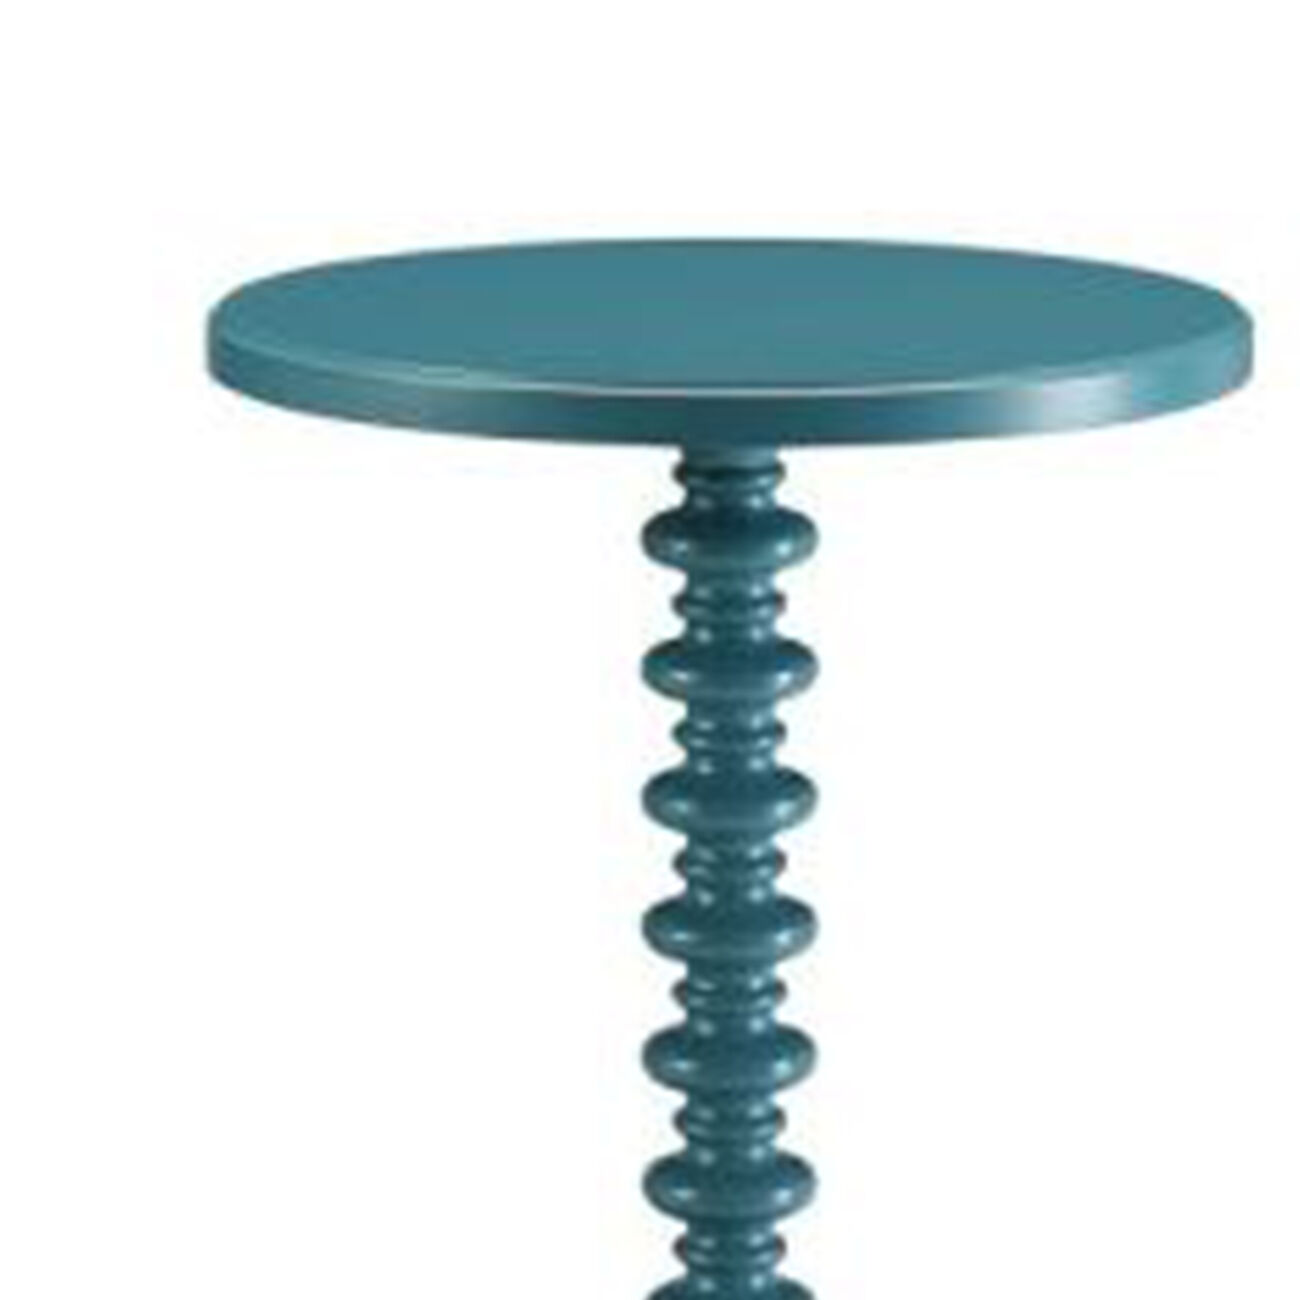 Astonishing Side Table With Round Top, Teal Blue